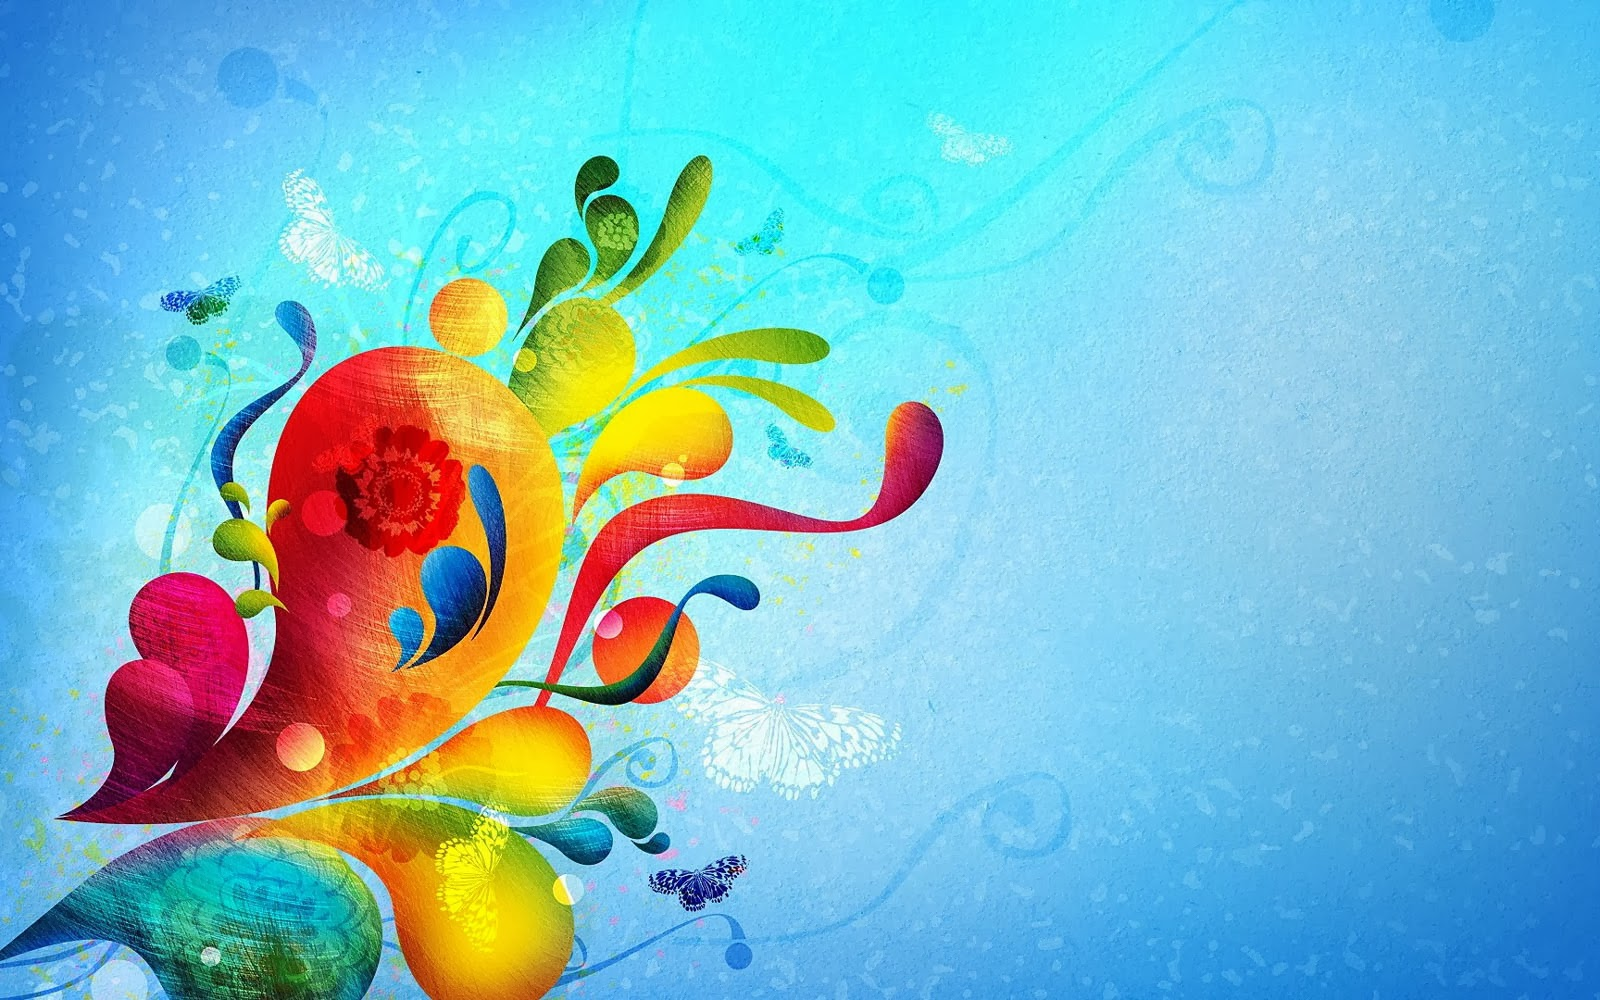 wallpapers: Colorful Swirls Wallpapers